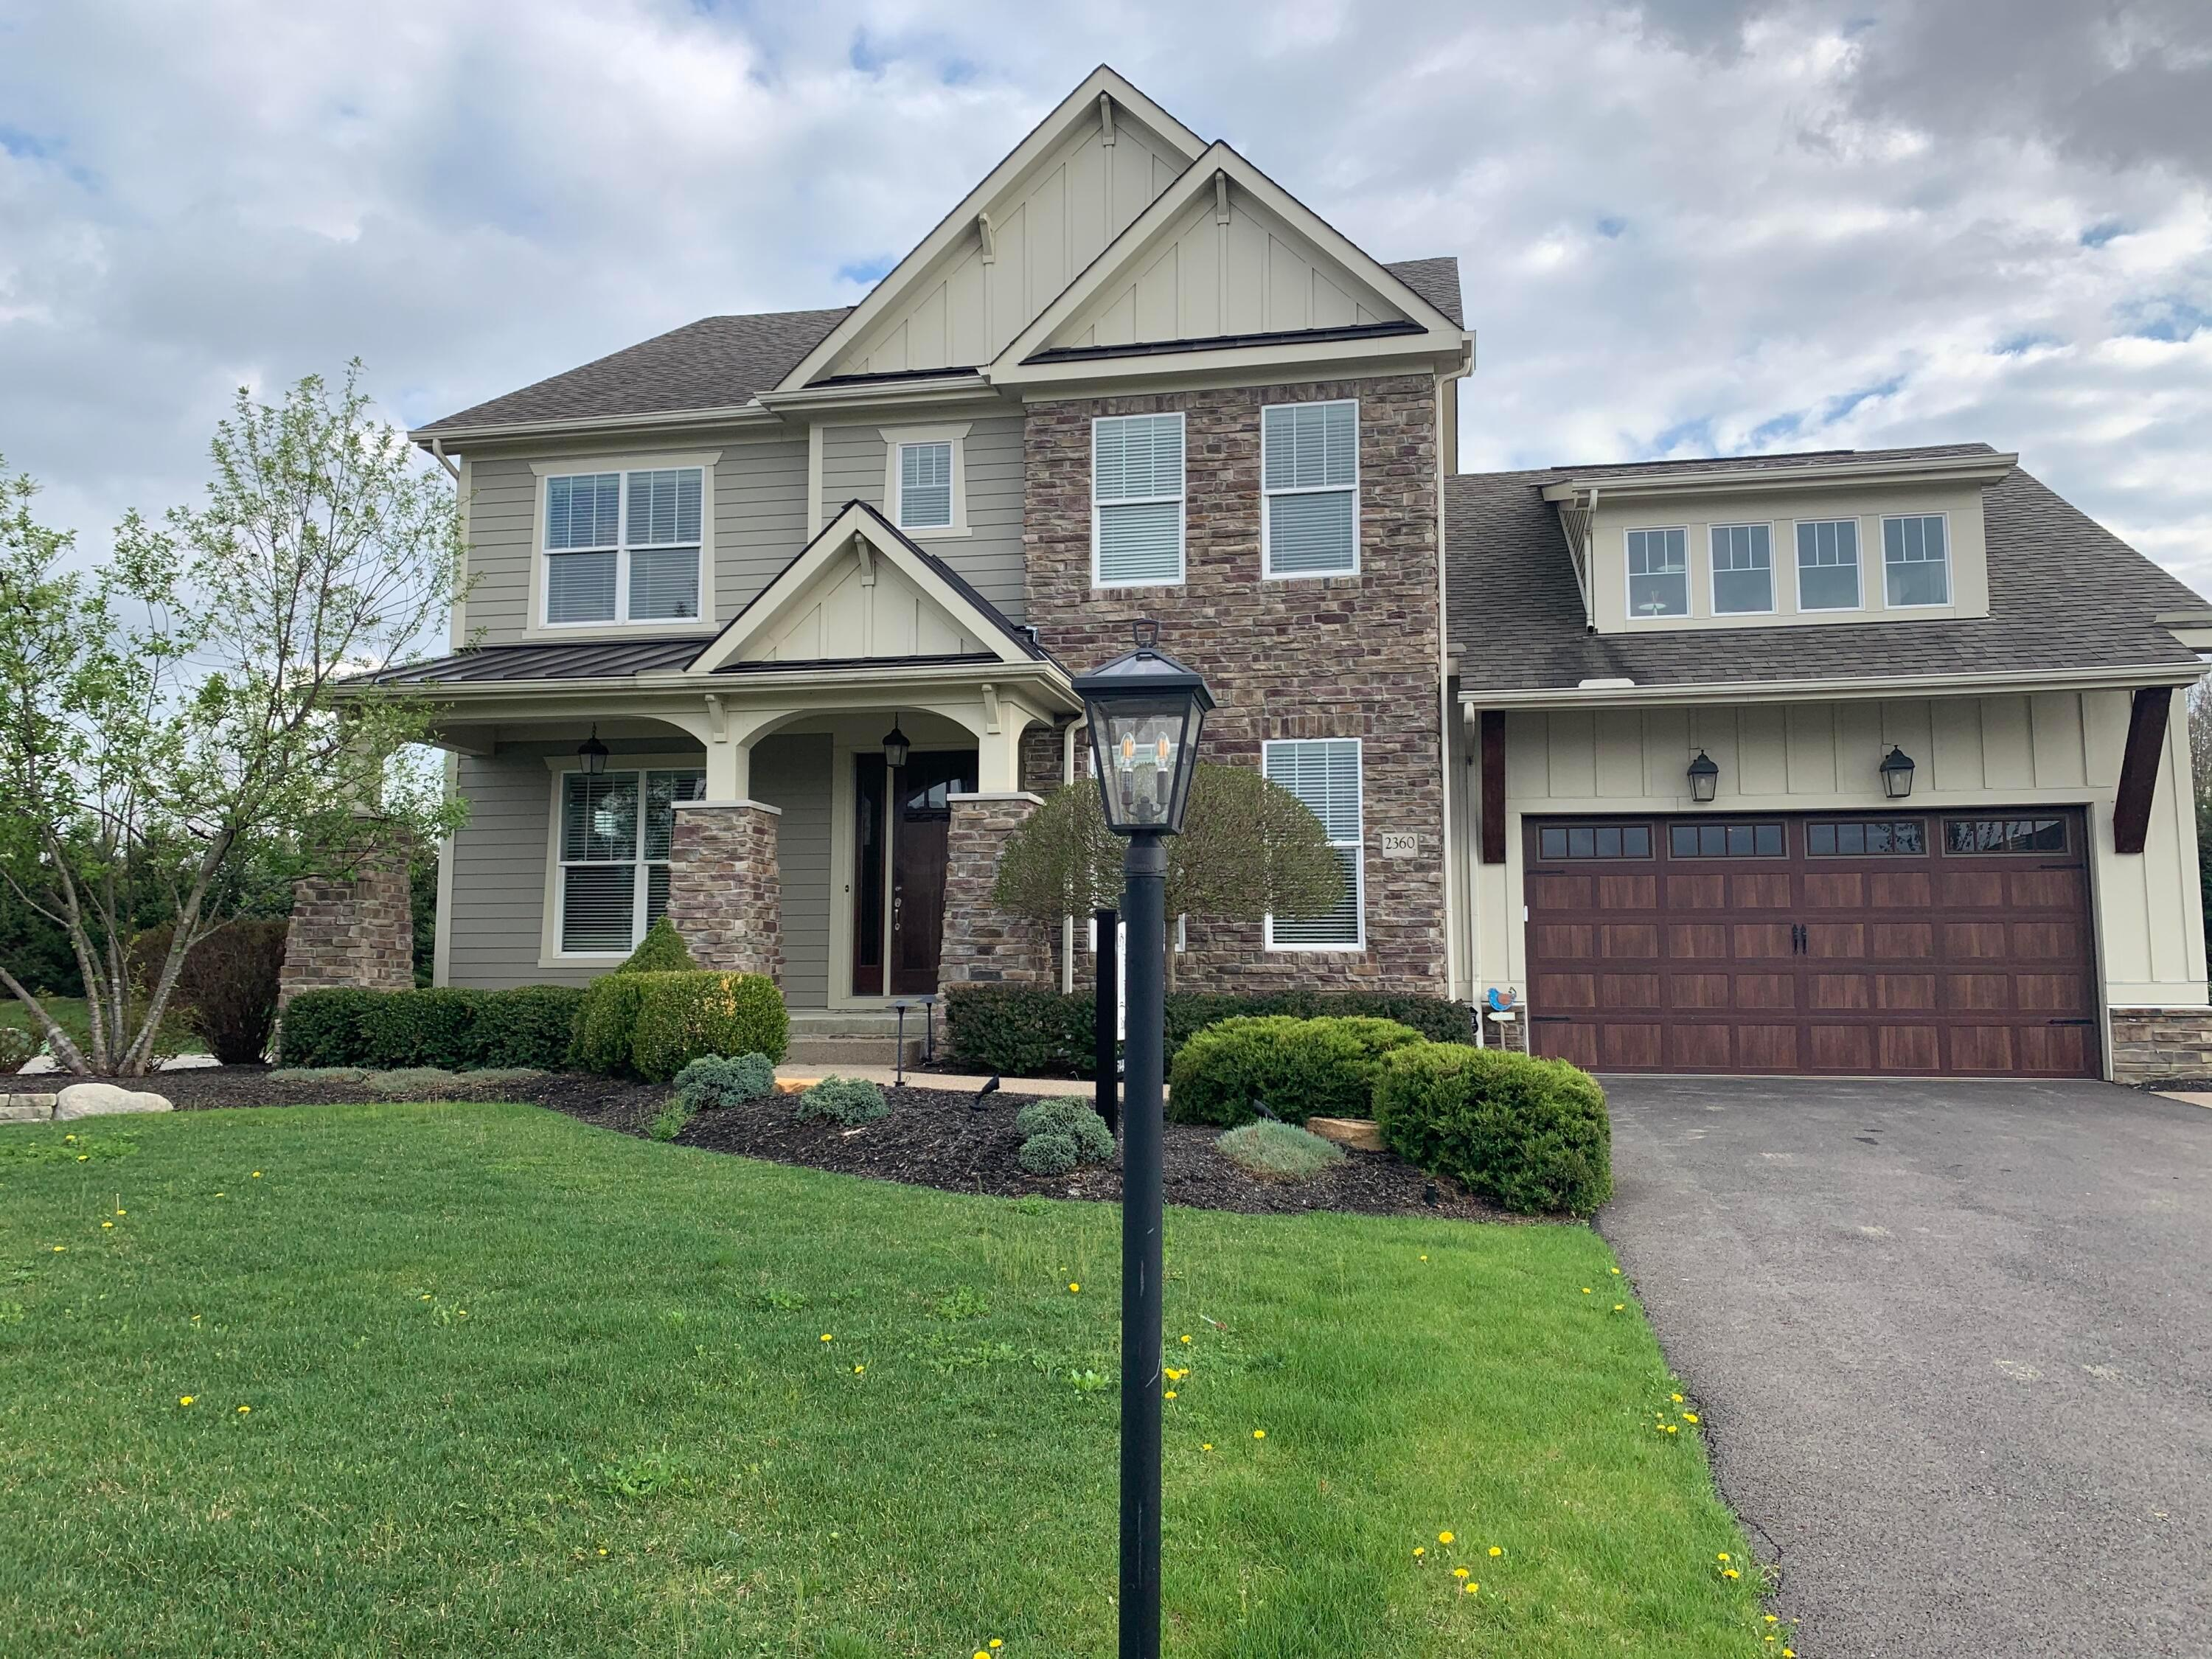 Photo of 2360 Koester Trace, Lewis Center, OH 43035